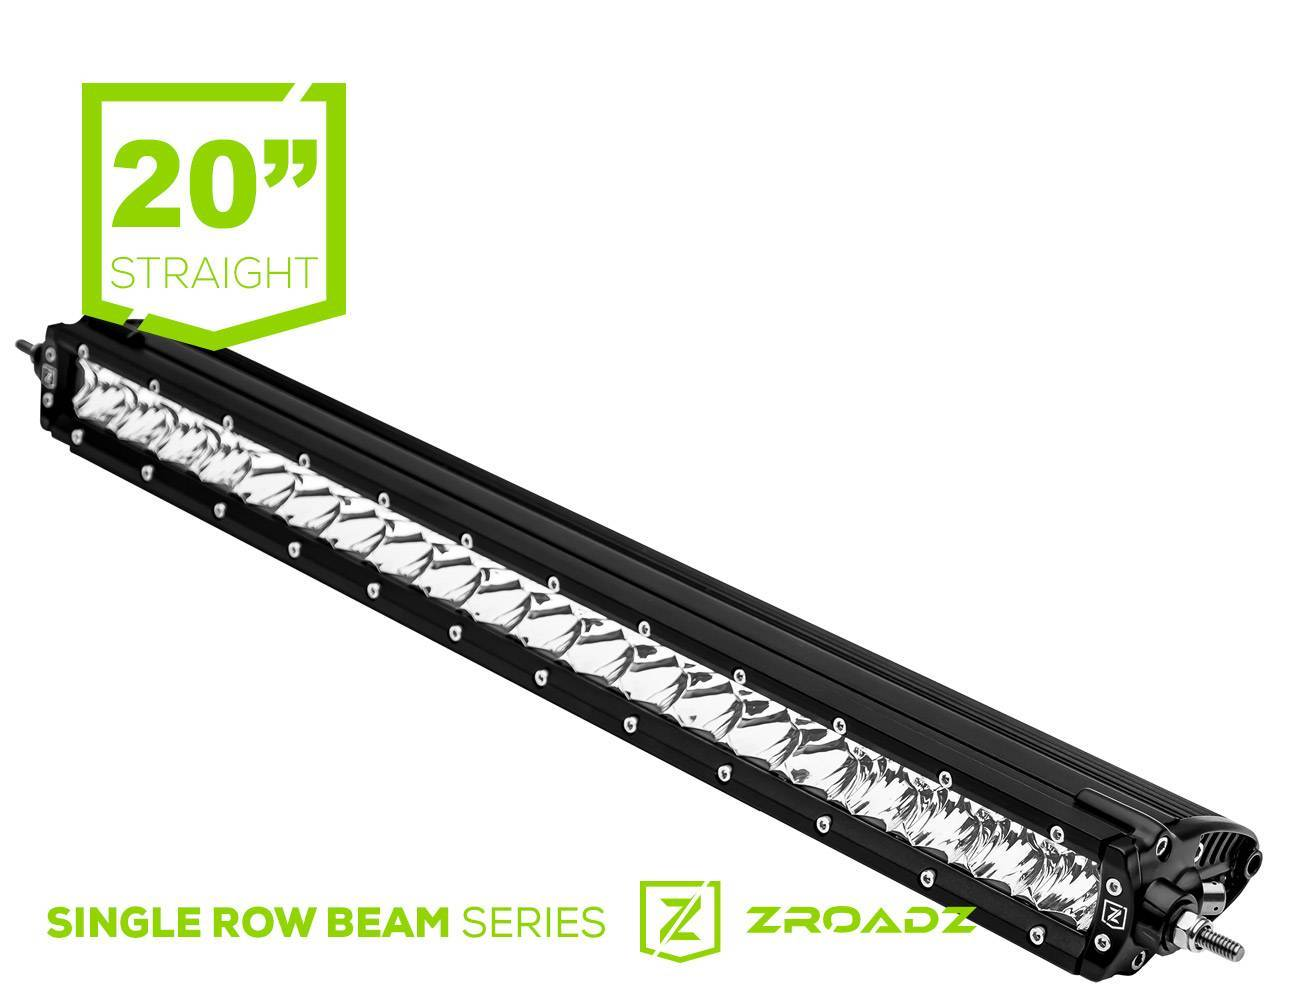 ZROADZ - 20 Inch LED Straight Single Row Slim Light Bar - PN #Z30S1-20-P7EJ